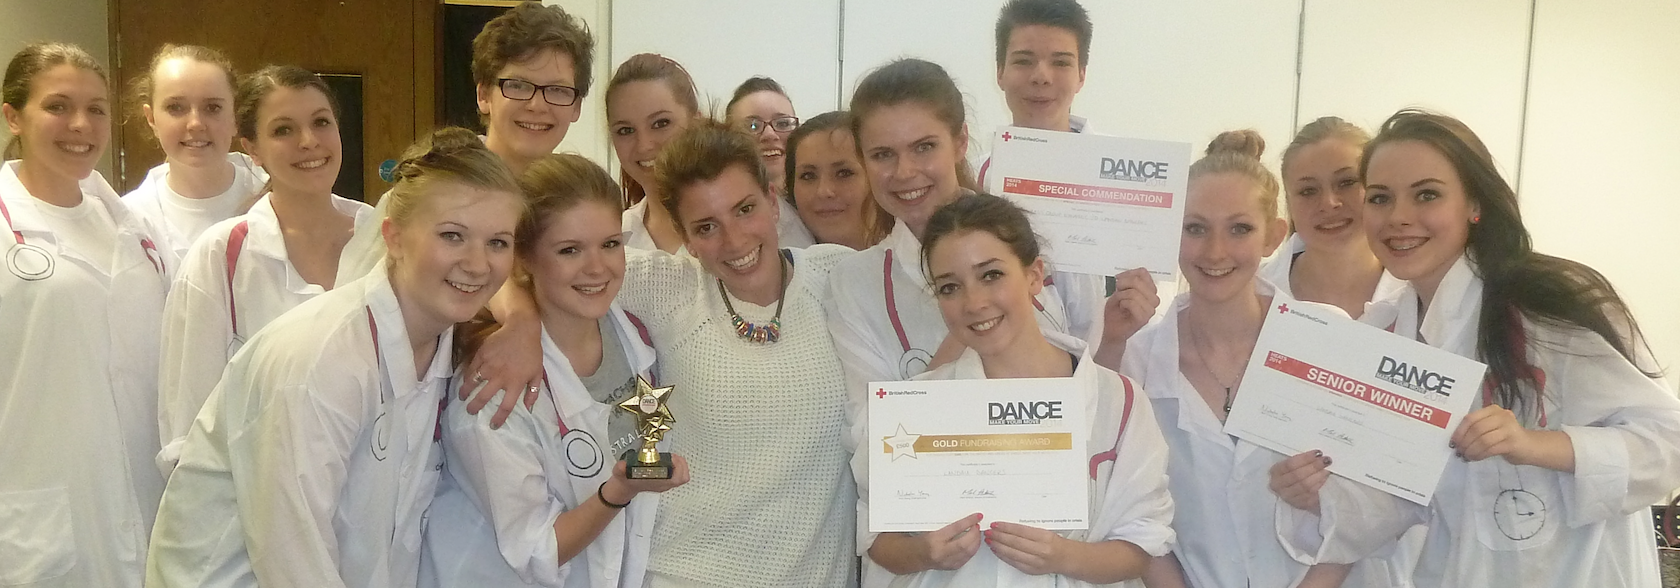 Red Cross Dance Competition Success